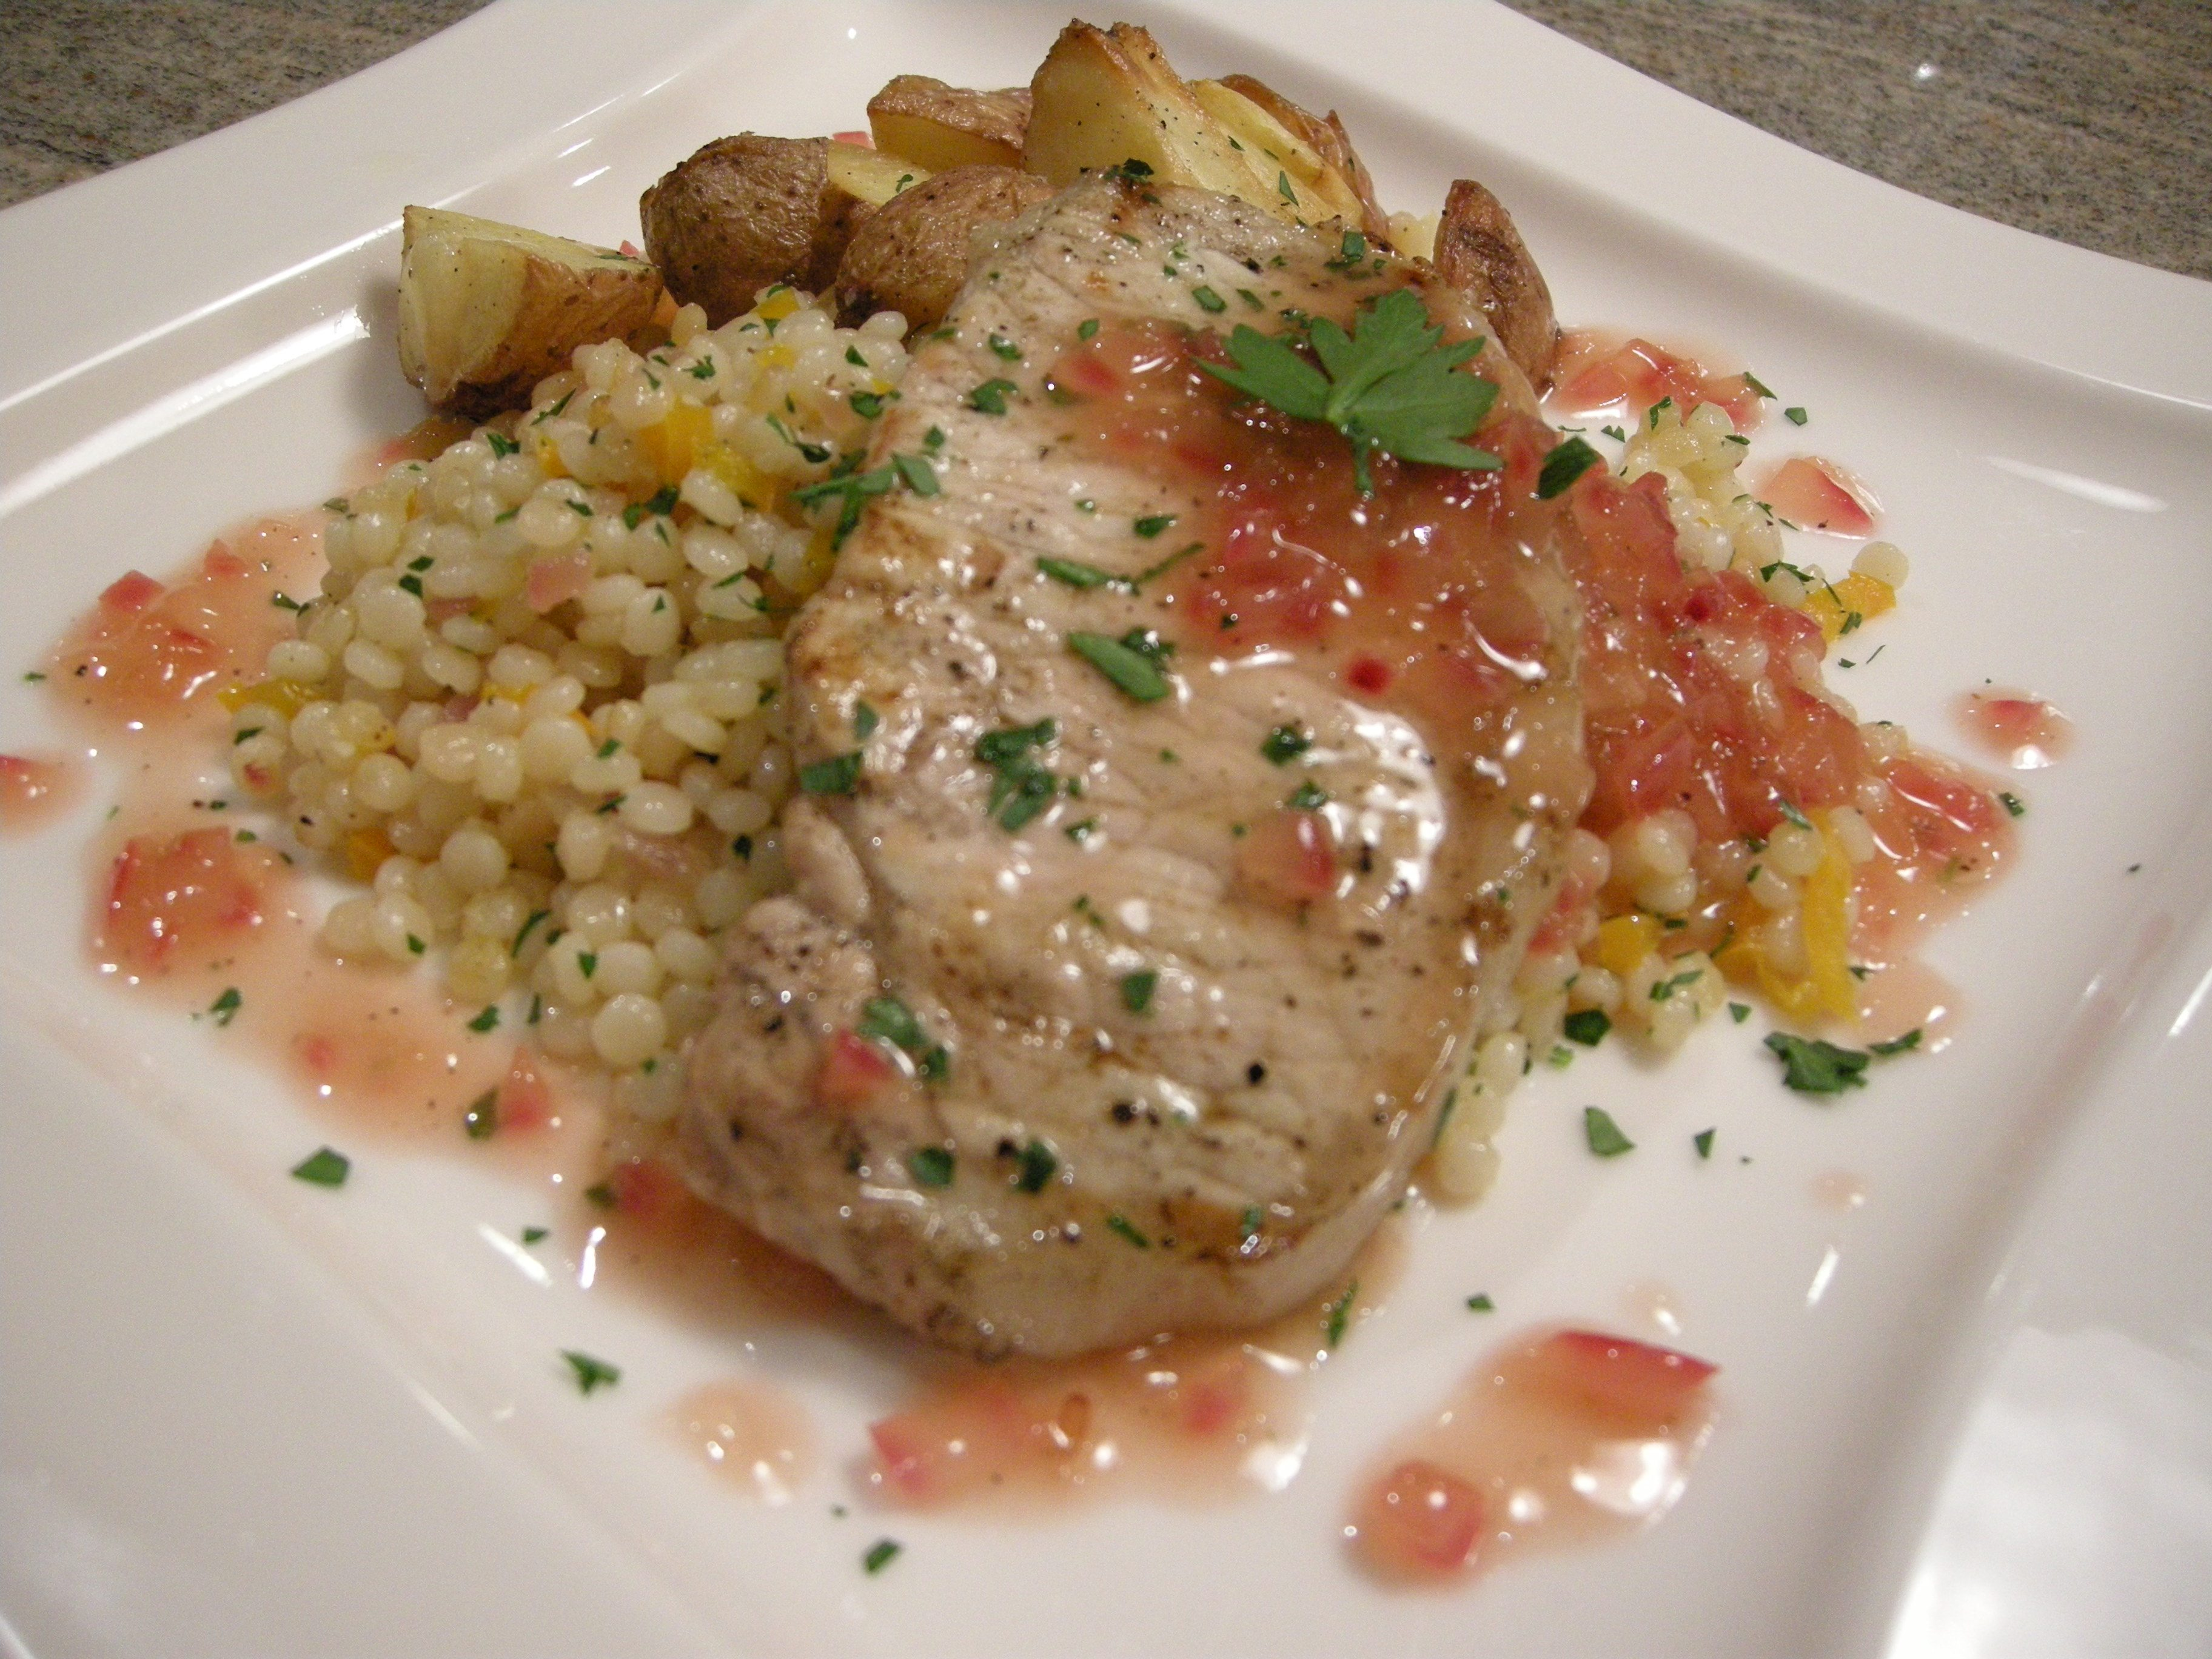 Grilled Pork Chops w/Tokaji Wine Reduction Sauce, Couscous Salad & Roasted Potatoes picture